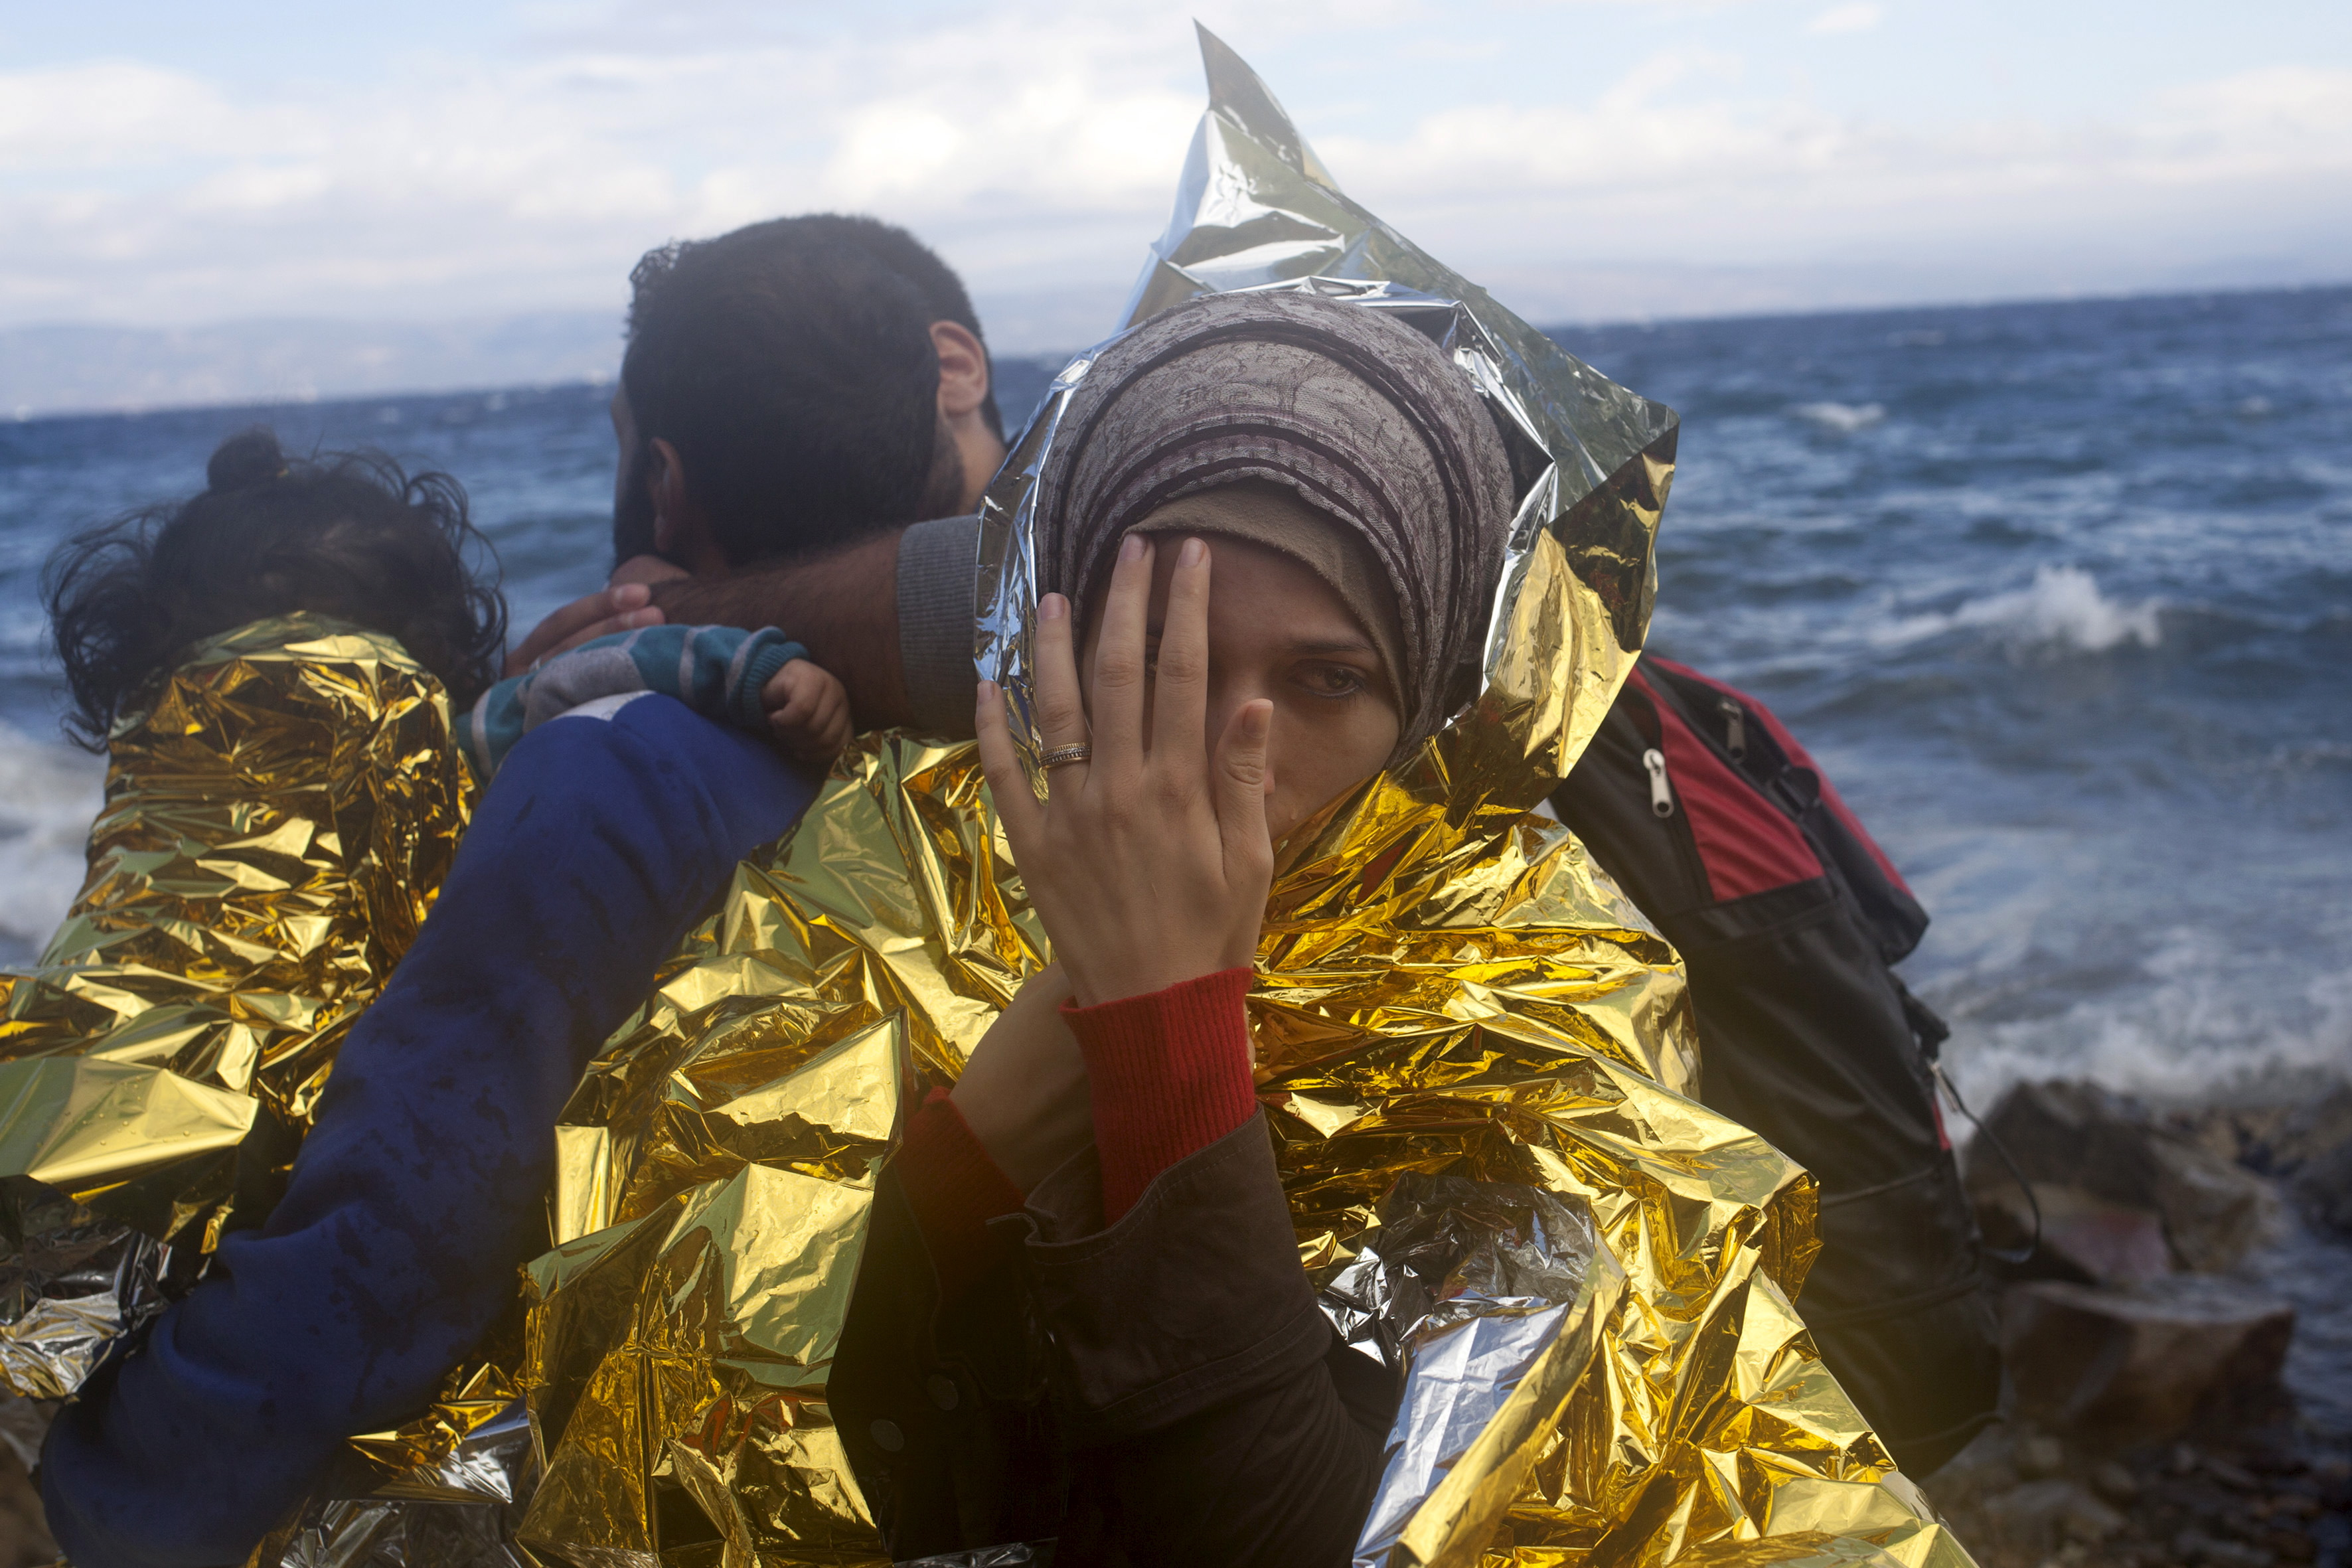 A Syrian refugee wrapped in a thermal blanket looks on, following her arrival on an overcrowded dinghy on the Greek island of Lesbos after crossing a part of the Aegean Sea from the Turkish coast, Sept. 30, 2015.